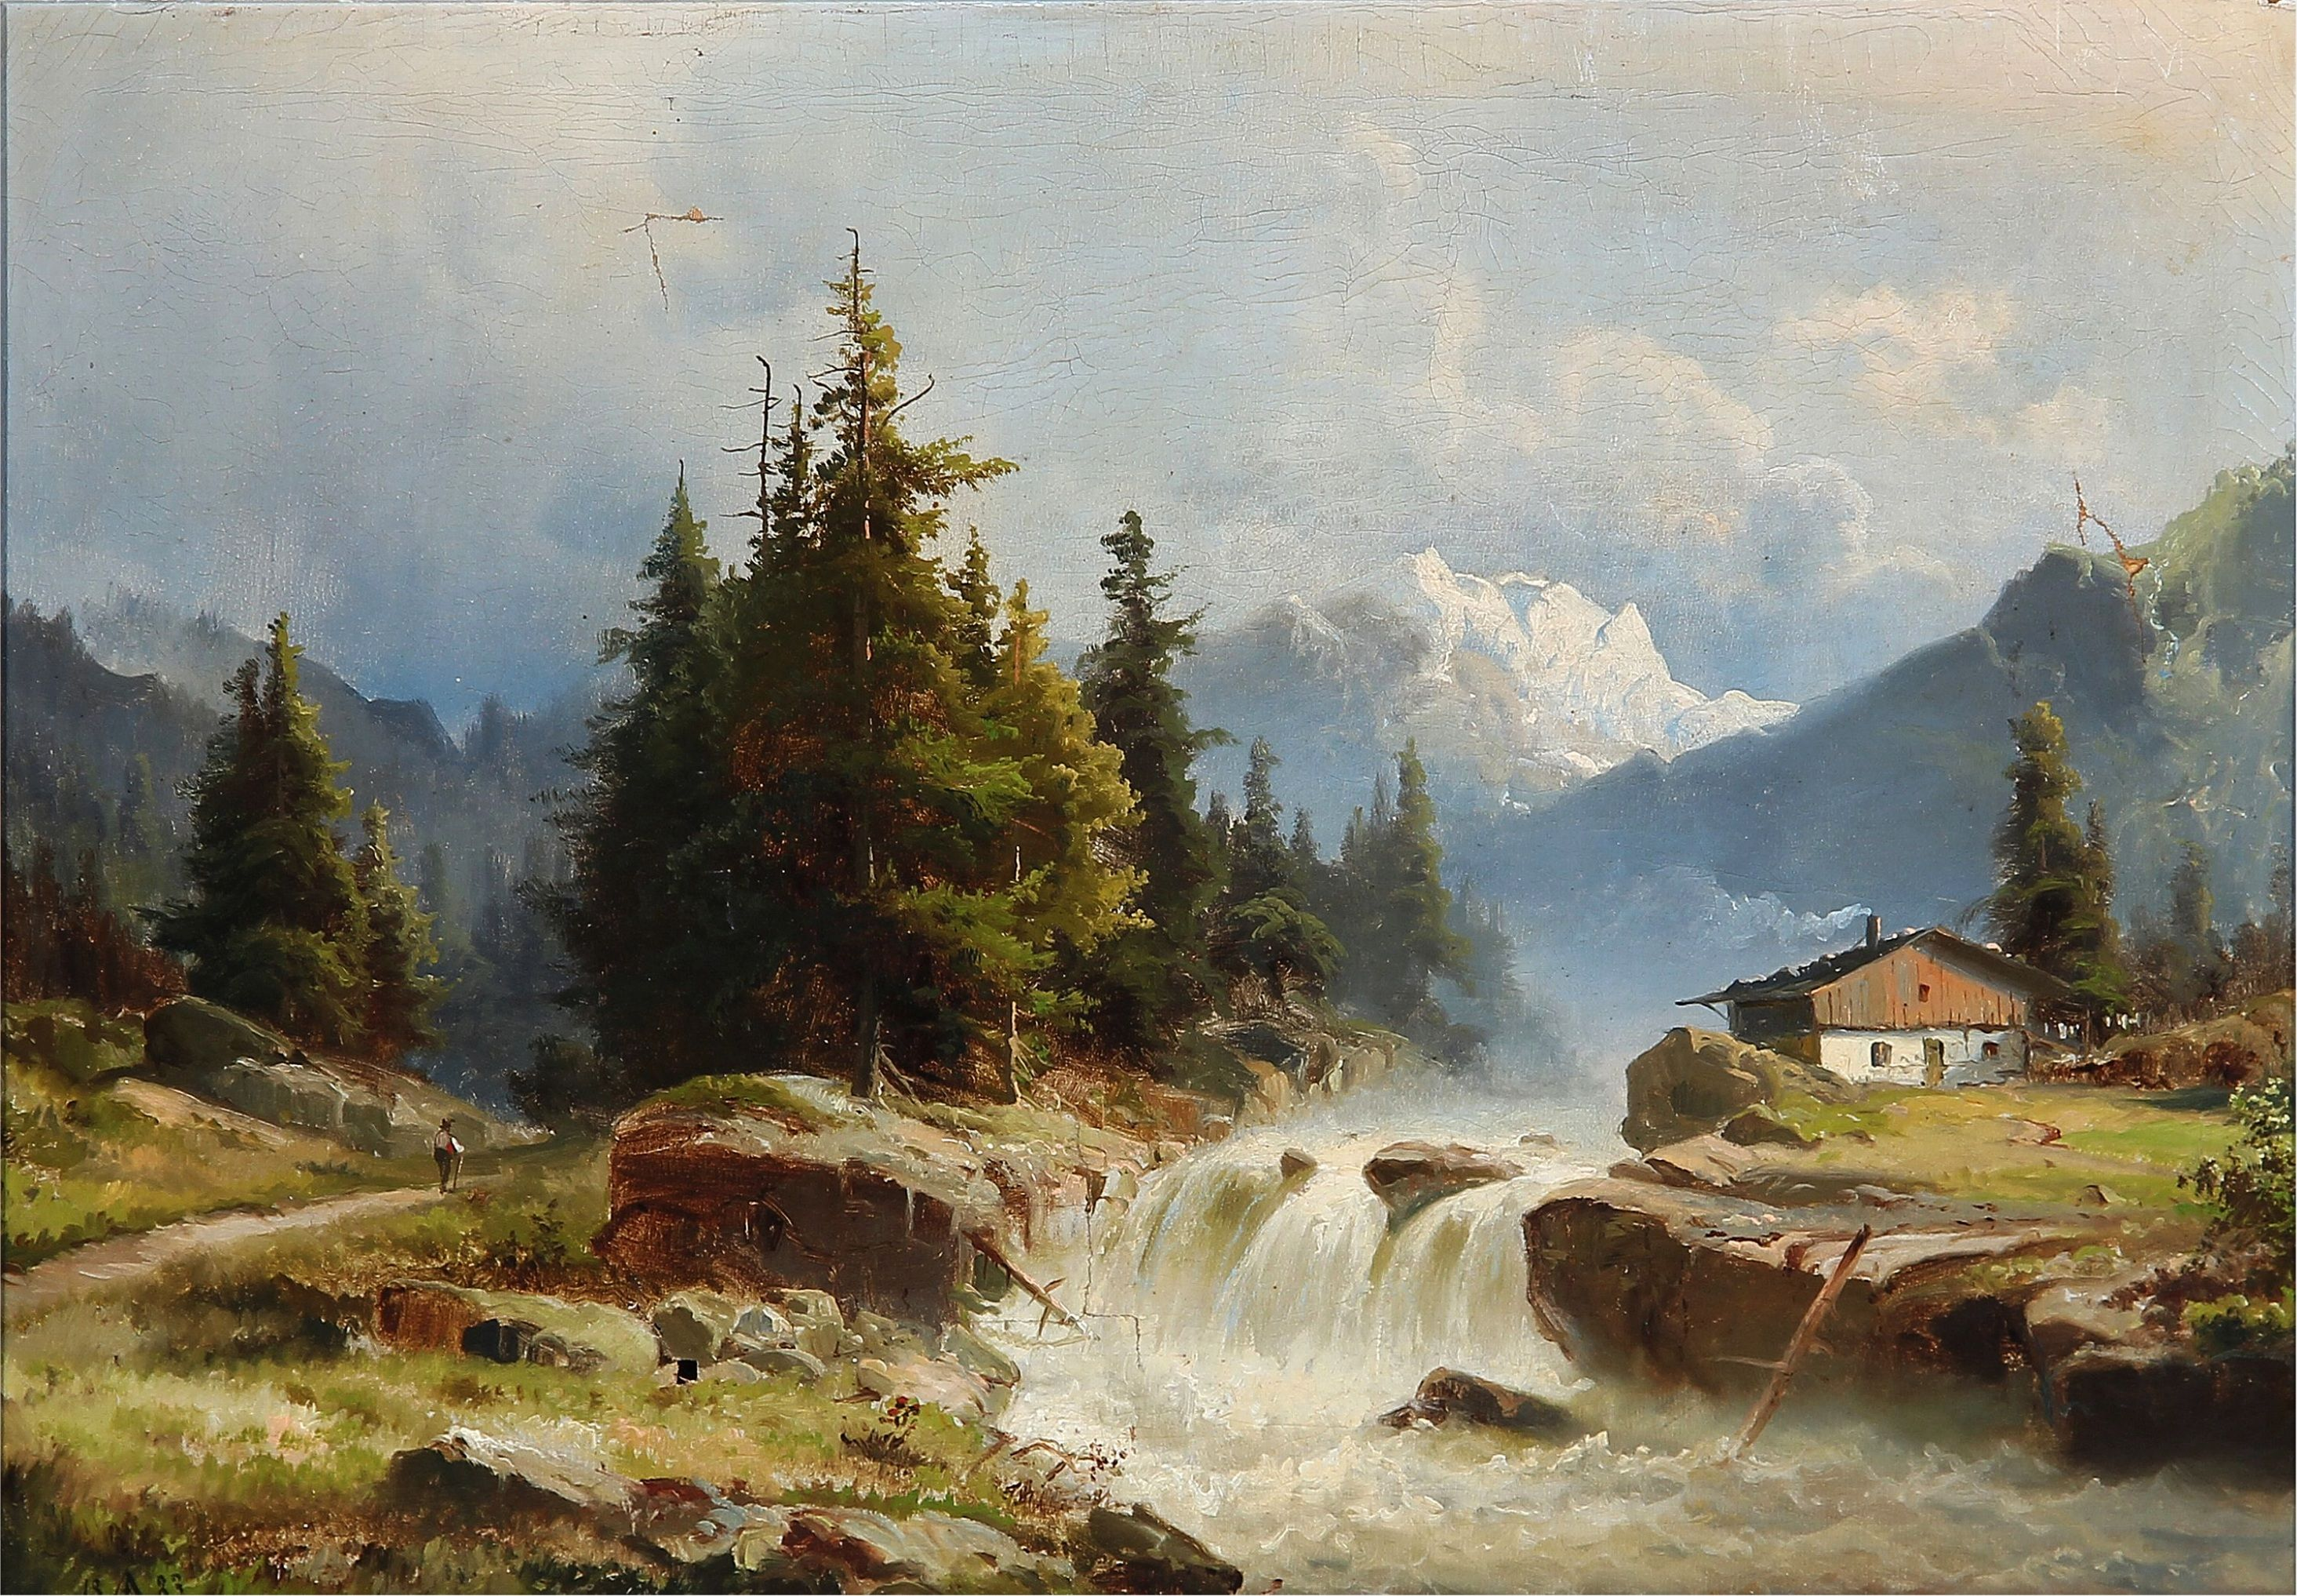 Pin by Agnes Varga on Painting   Mountain landscape